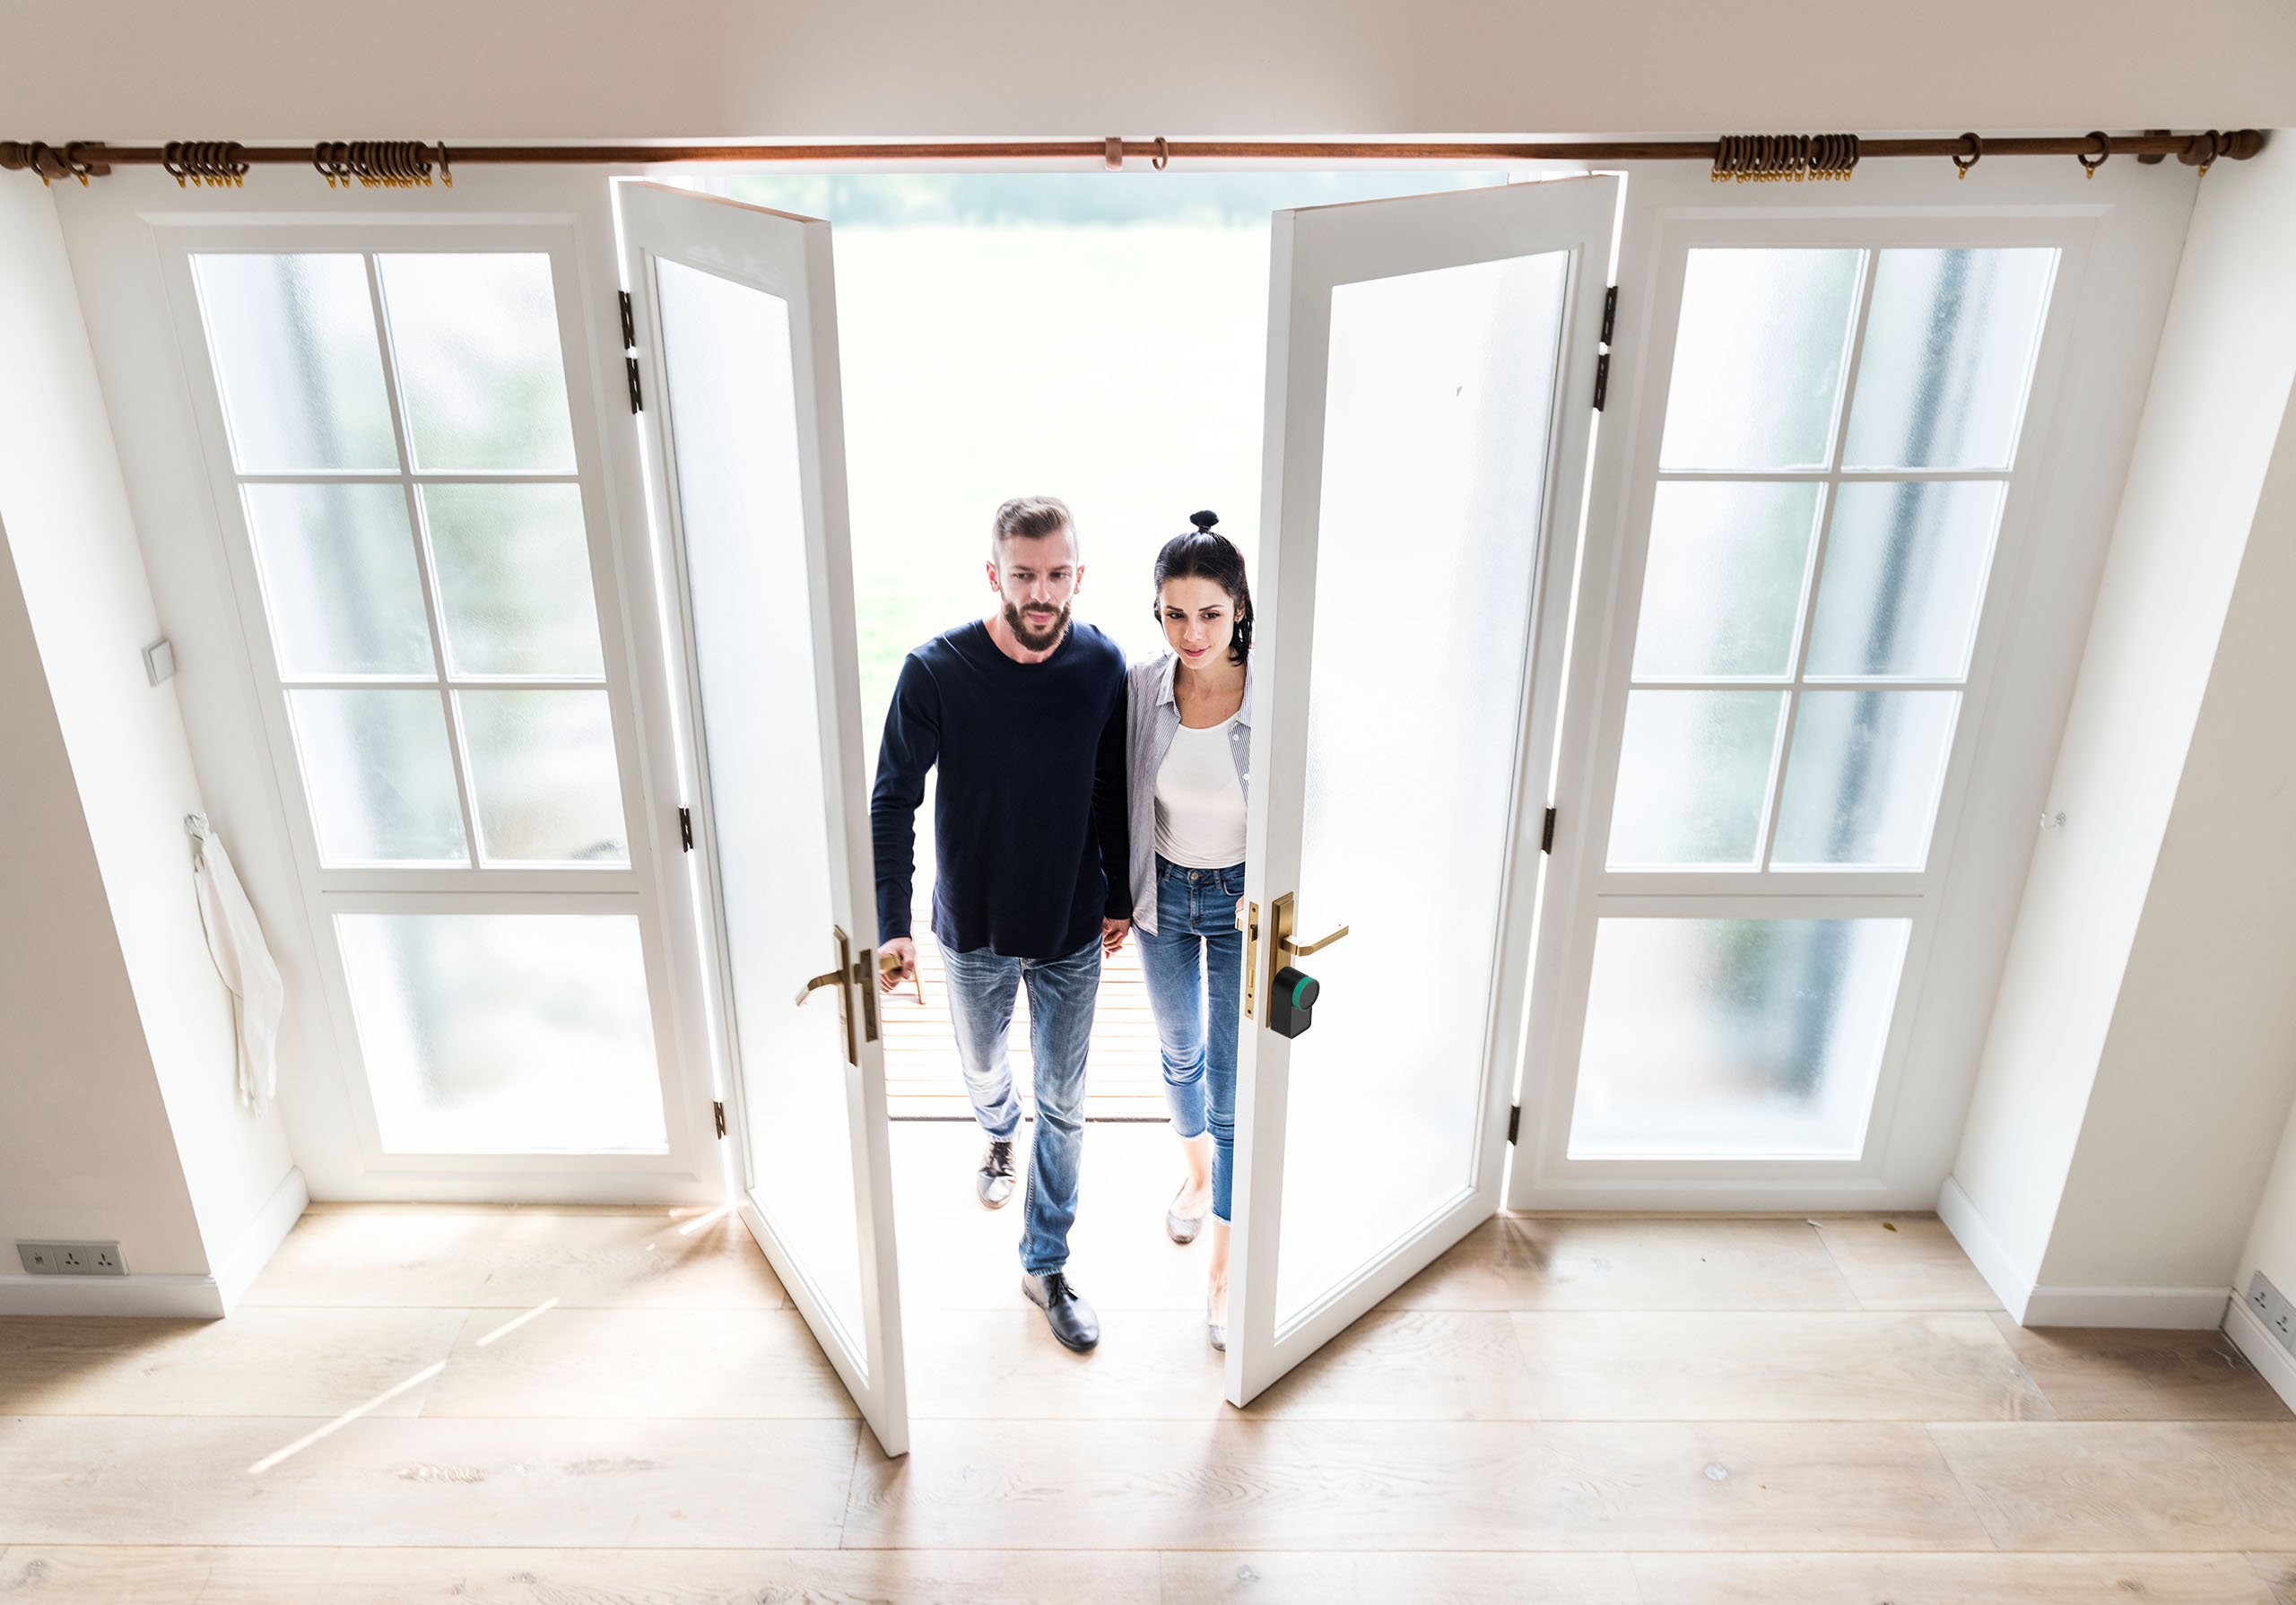 couple entering Airbnb house keymtt smart lock